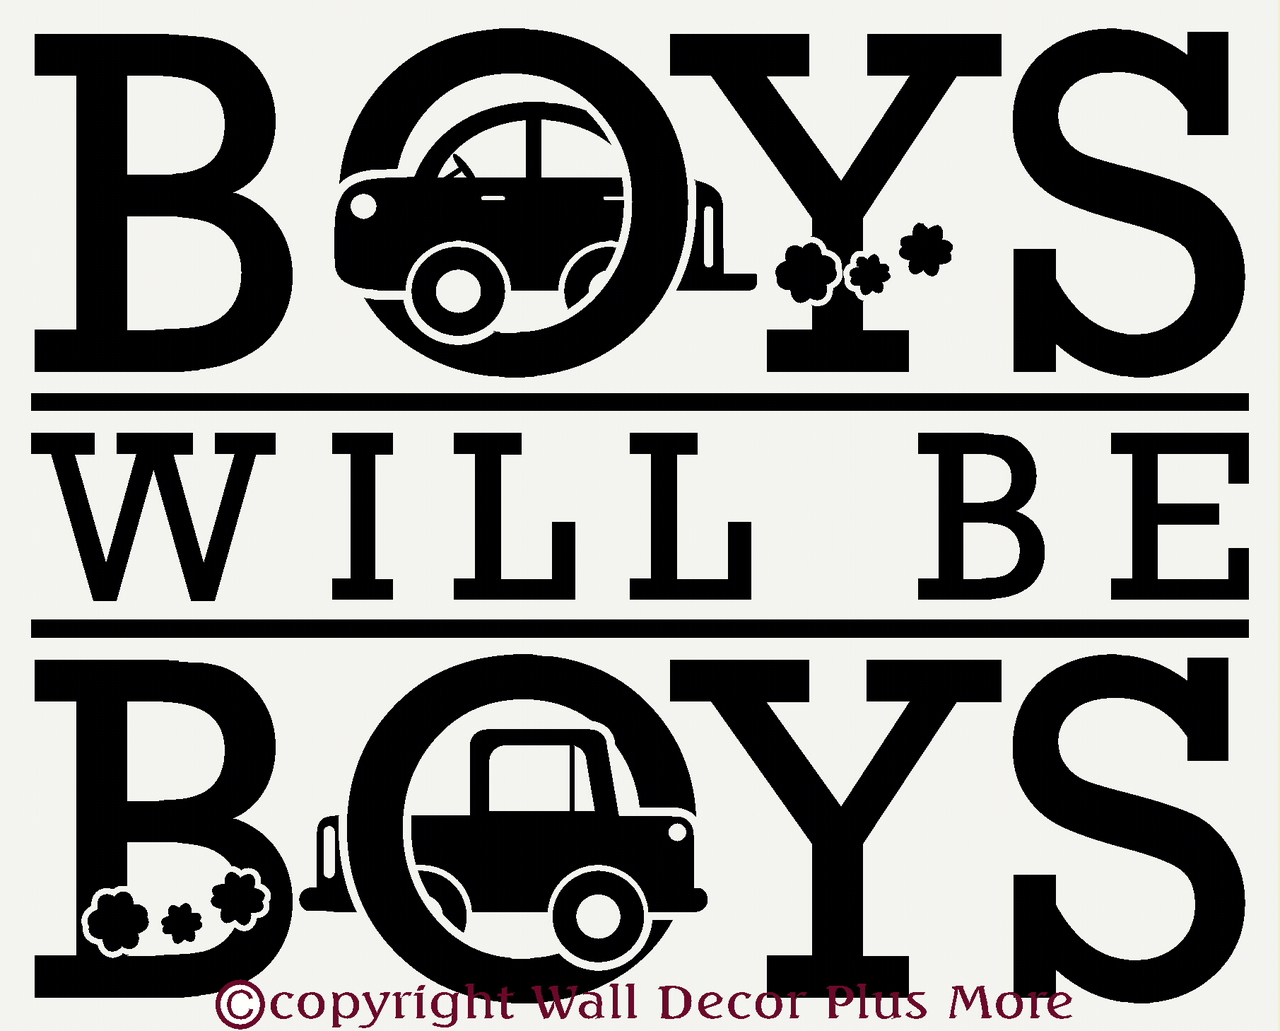 Boys will be boys wall sticker decals saying with cars